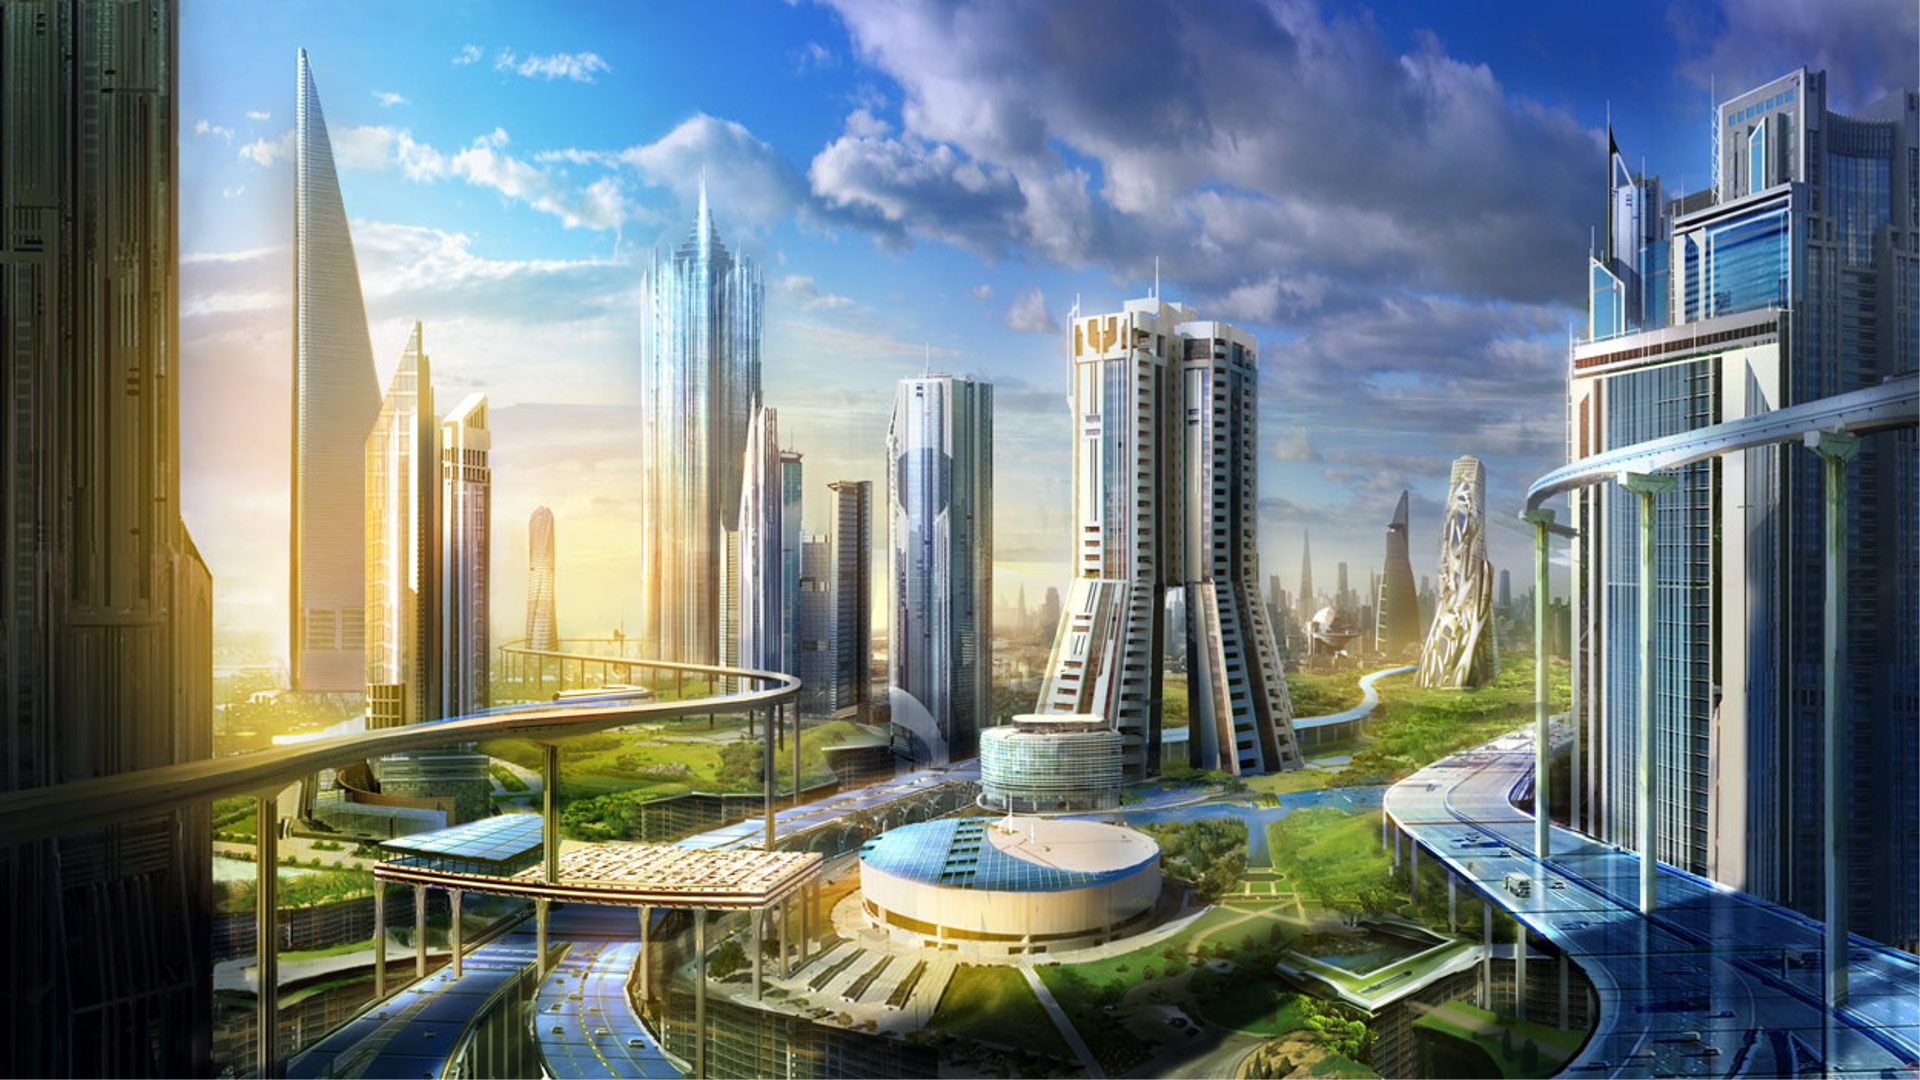 Nice wallpapers Future City 1920x1080px